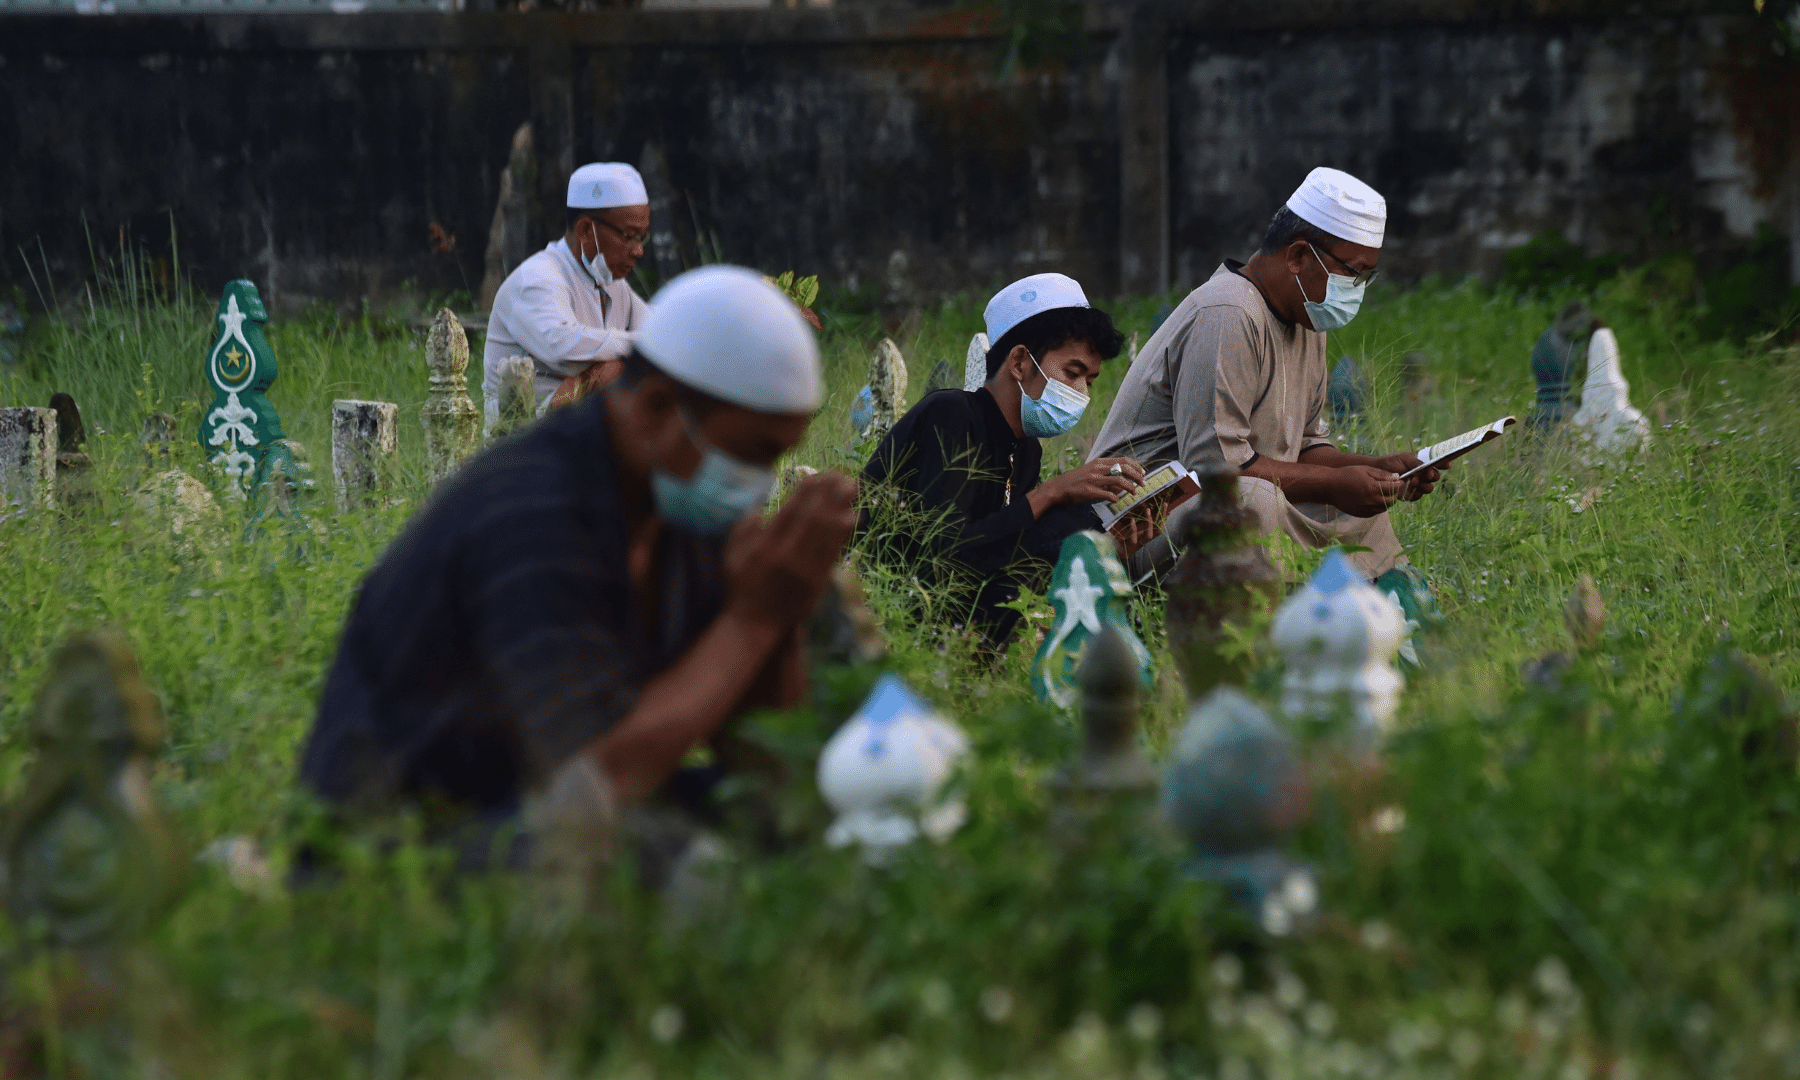 People pray next to the grave of relatives at a cemetery during Eidul Azha in Thailand's southern province of Narathiwat. — AFP